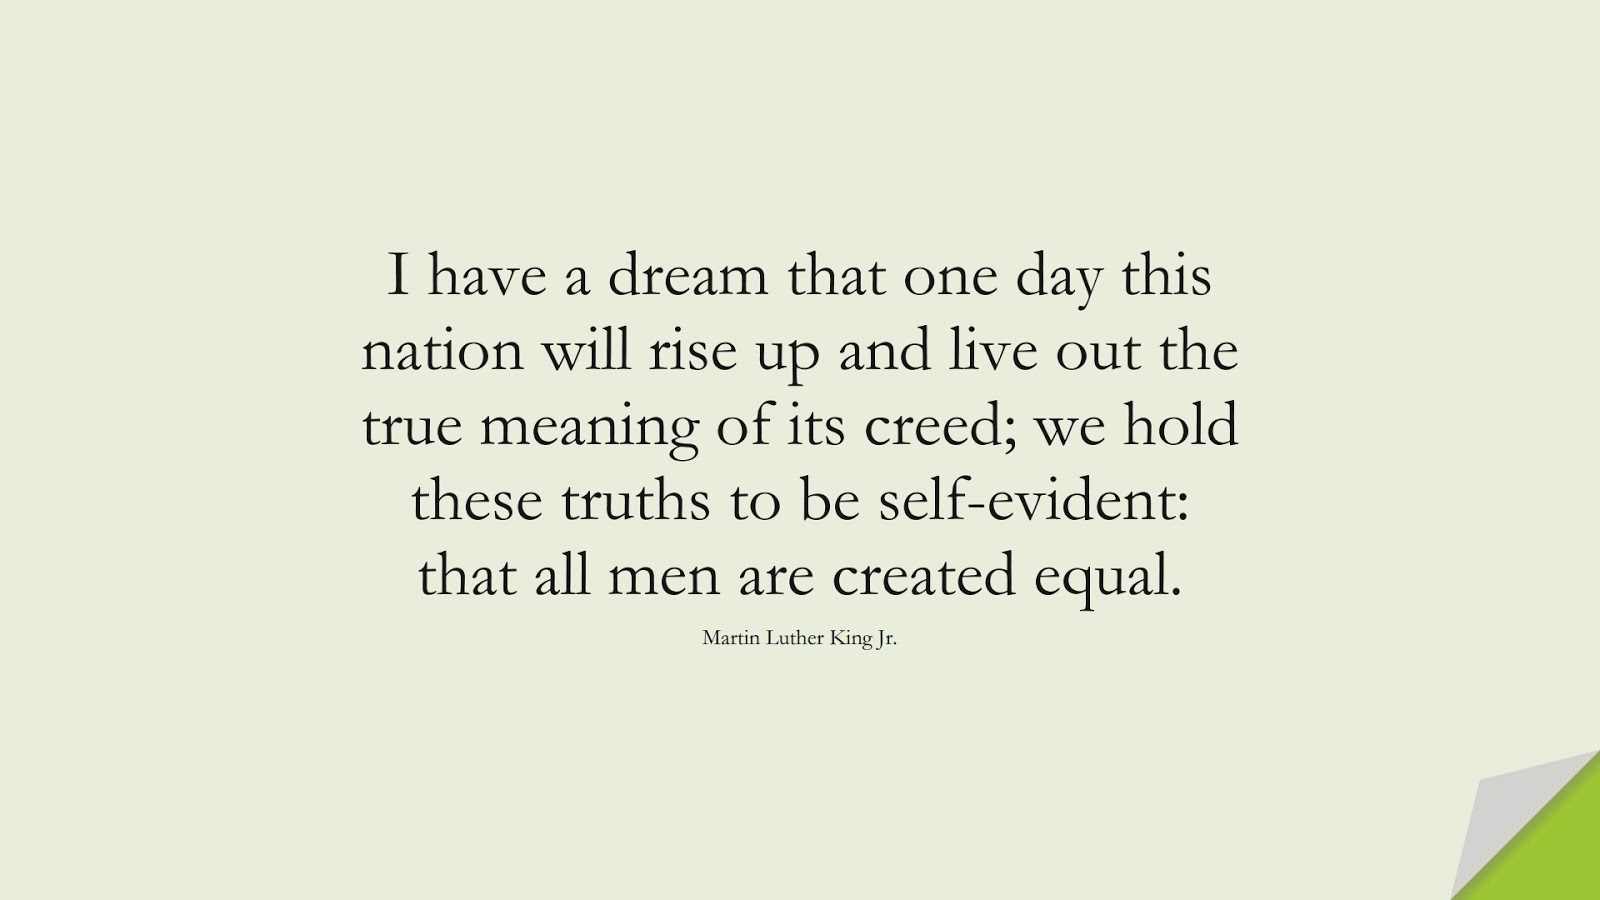 I have a dream that one day this nation will rise up and live out the true meaning of its creed; we hold these truths to be self-evident: that all men are created equal. (Martin Luther King Jr.);  #MartinLutherKingJrQuotes